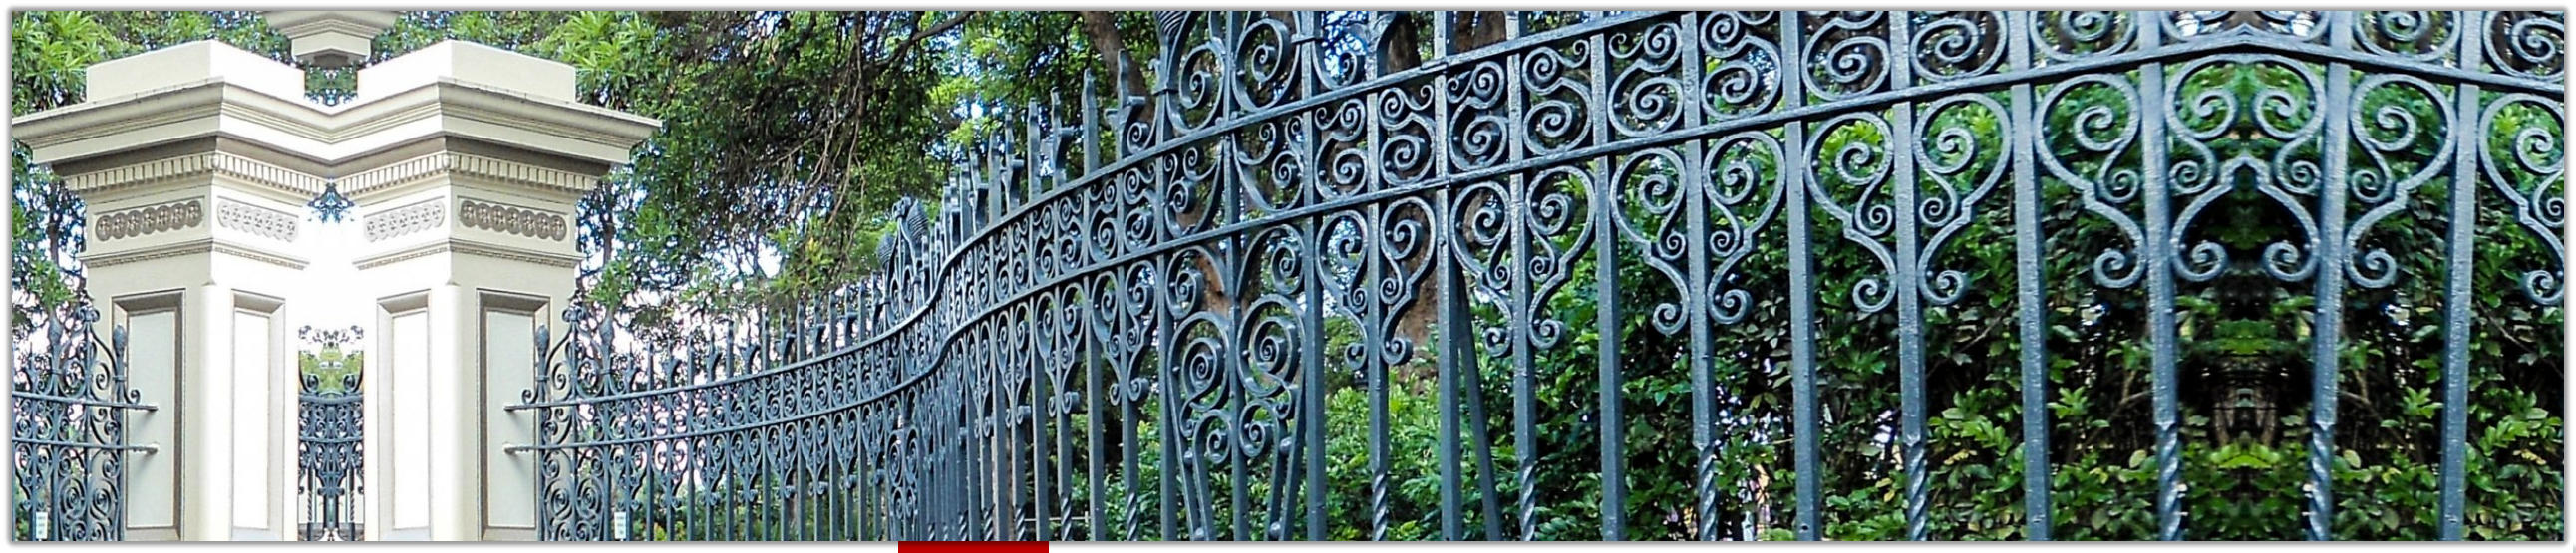 Wrought Iron Curved Heritage Railing